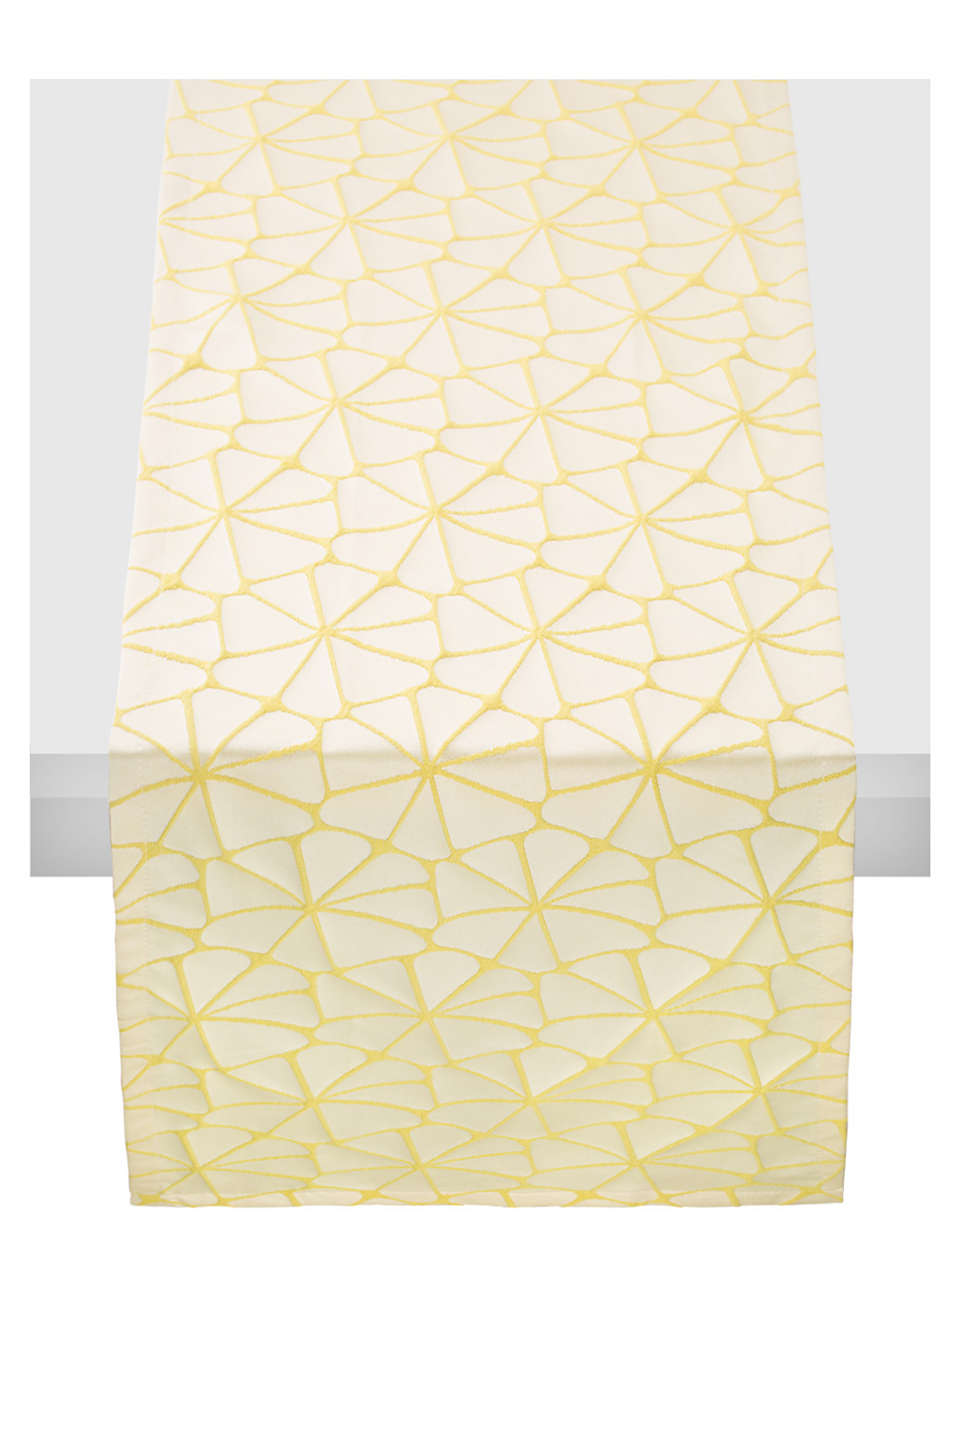 Esprit - Table runner with a graphic woven pattern